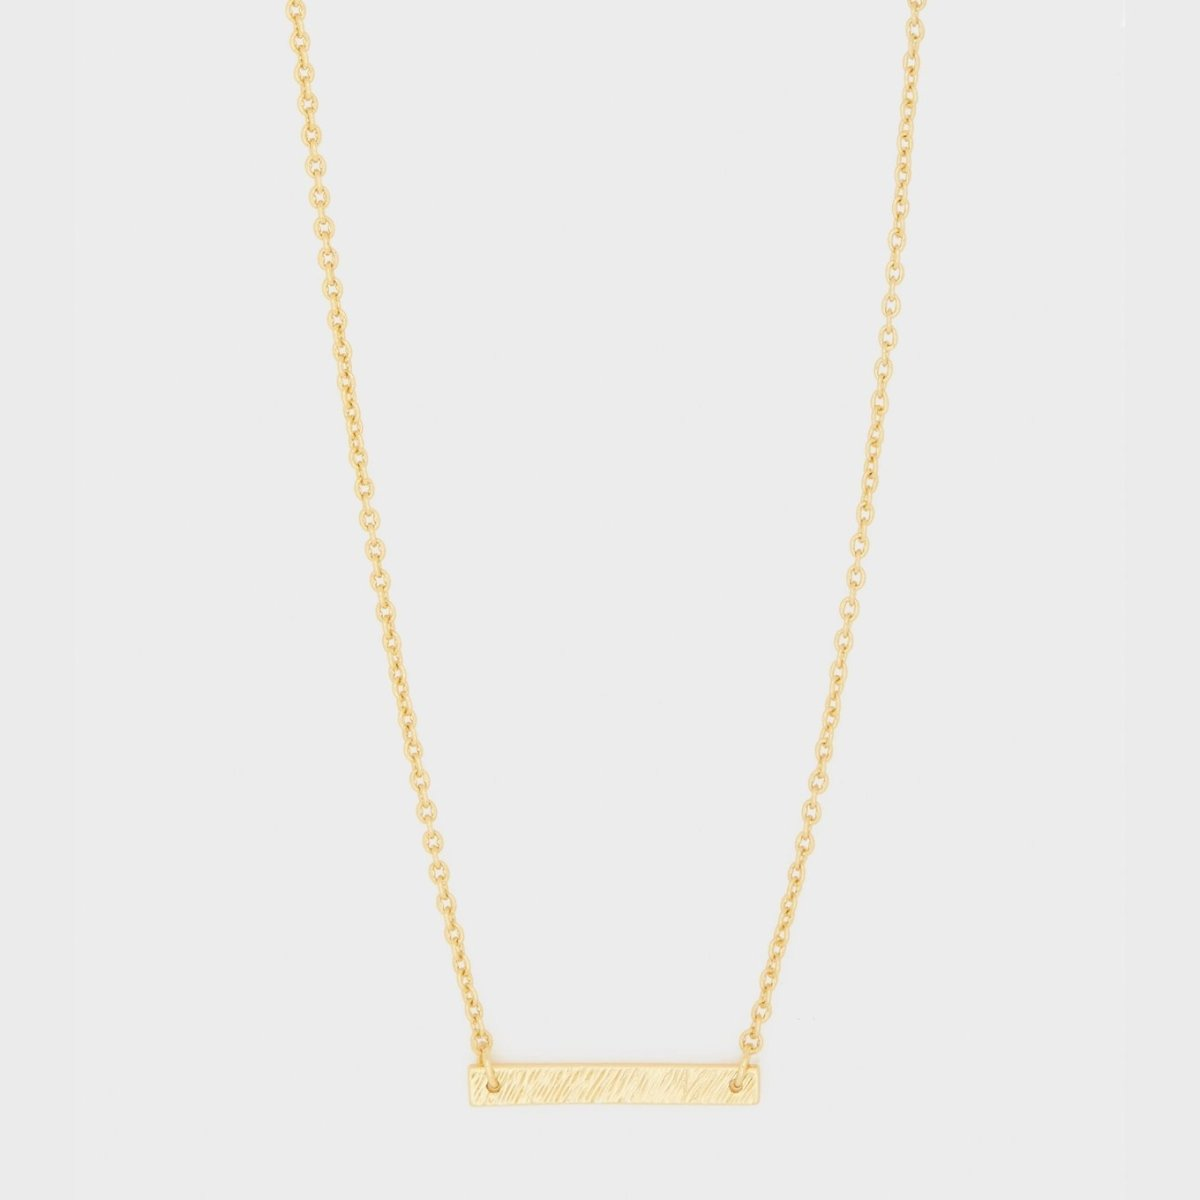 GORJANA JEWELRY // KNOX NECKLACE // GOLD - Las Olas